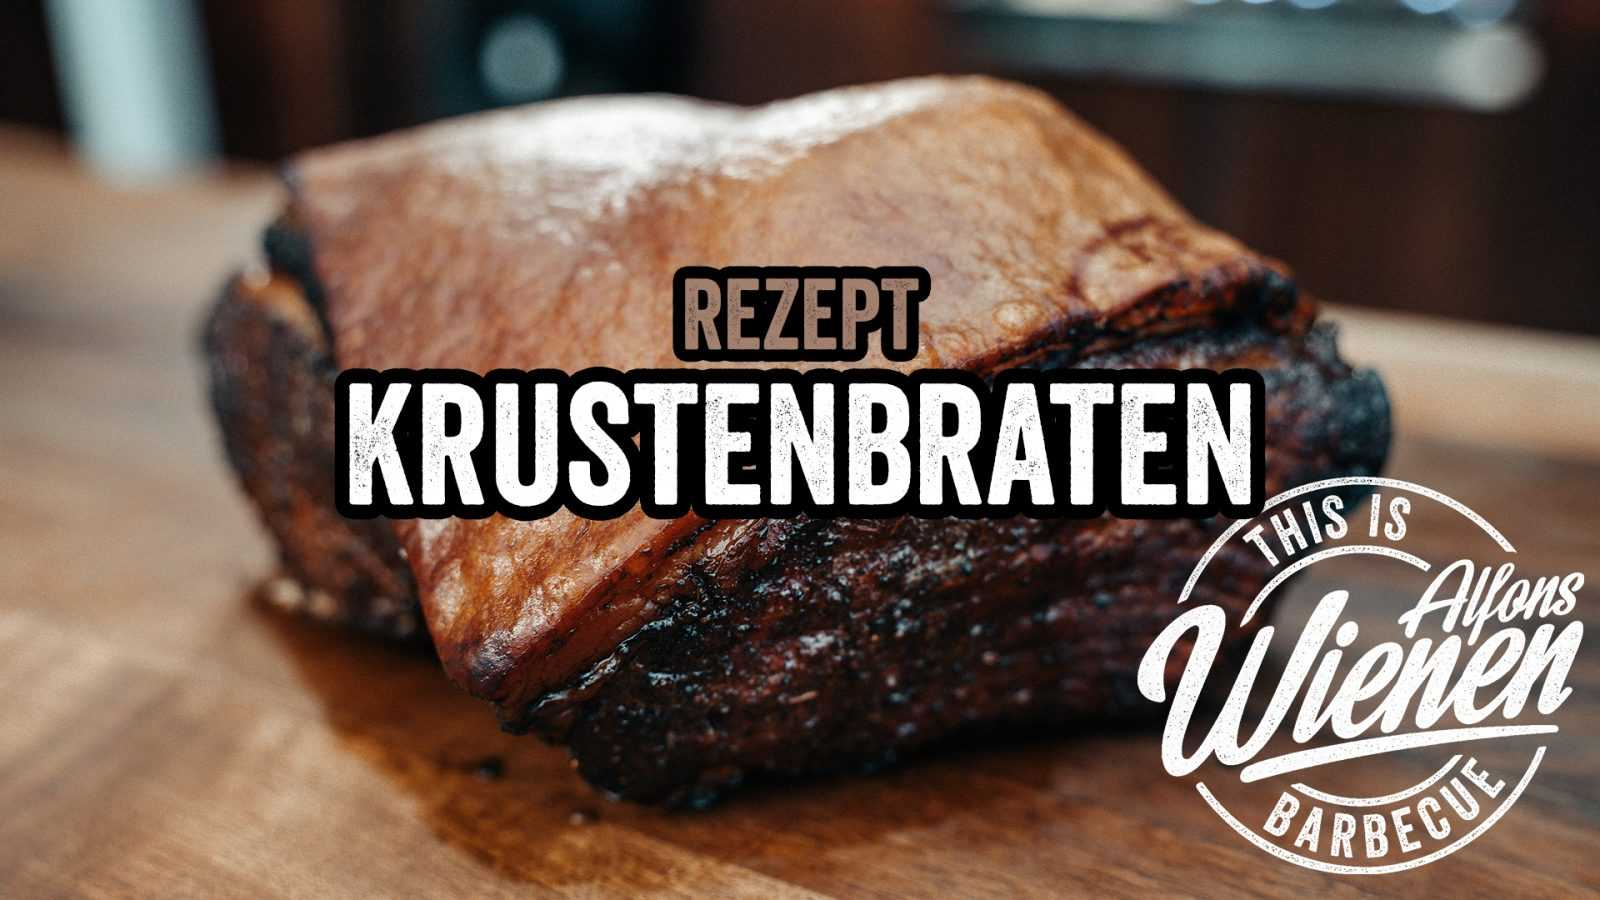 Krustenbraten mit perfekter Kruste - Perfect Pork Belly crust